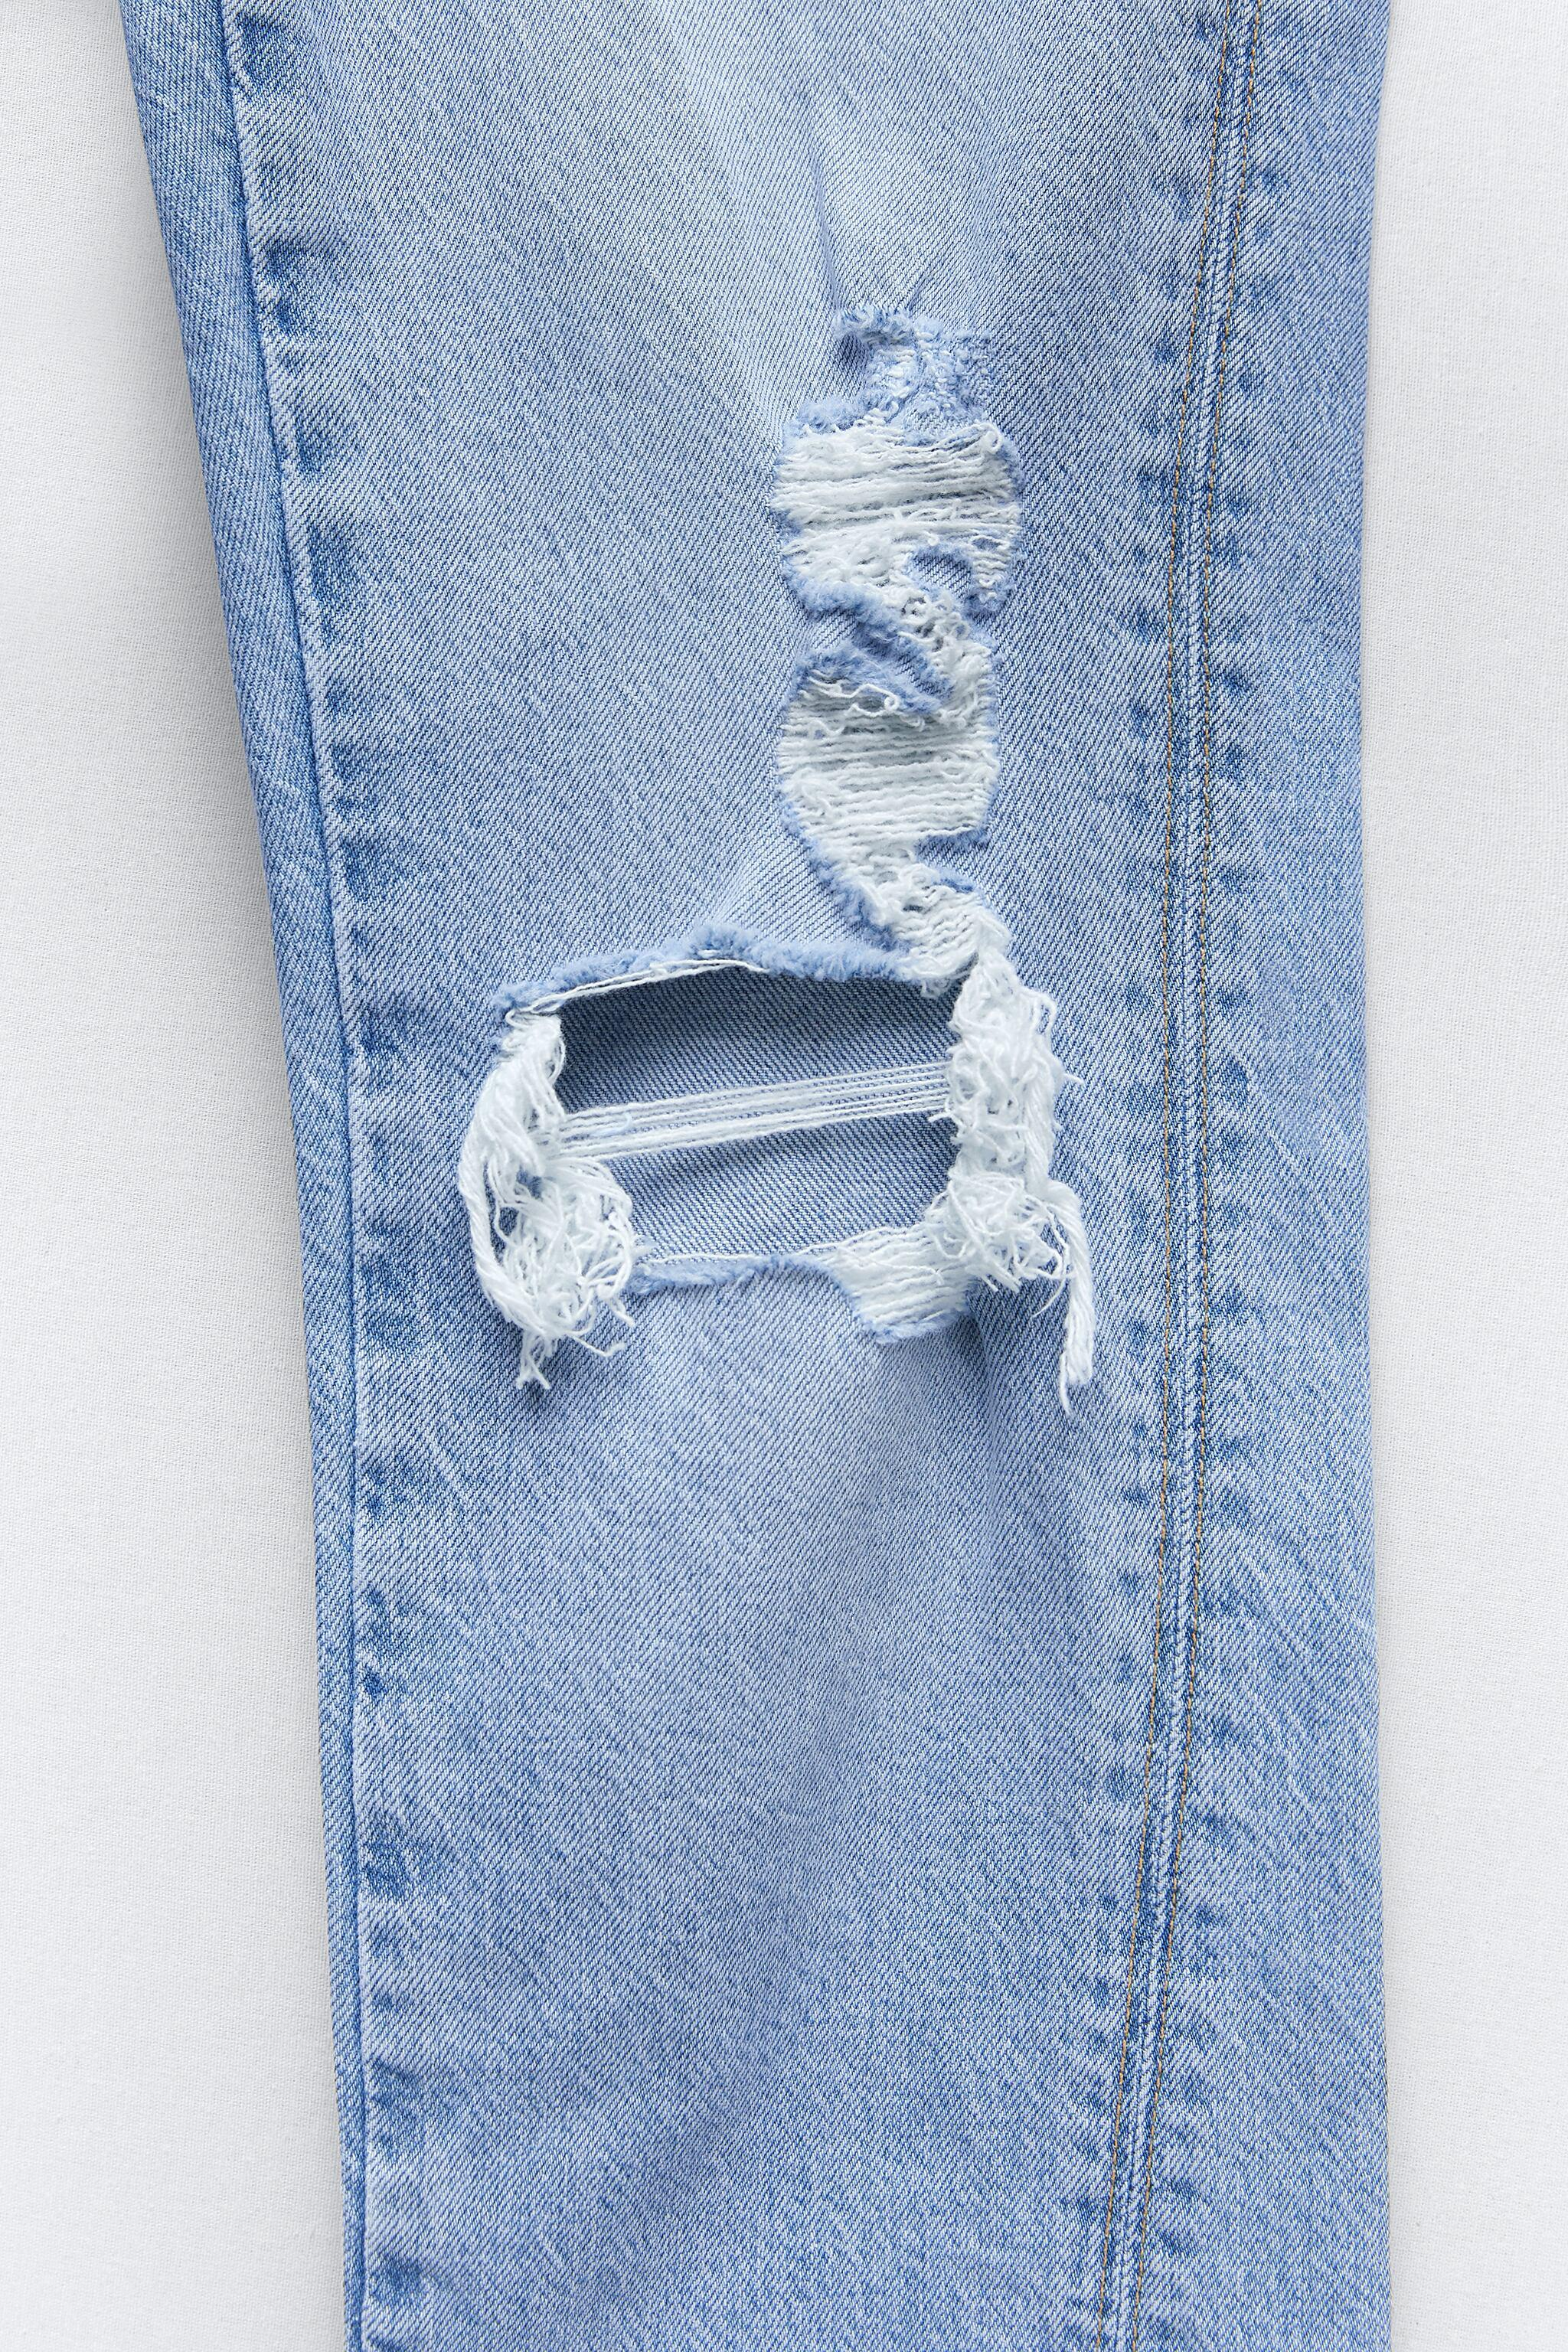 Z1975 HIGH RISE JEANS 9